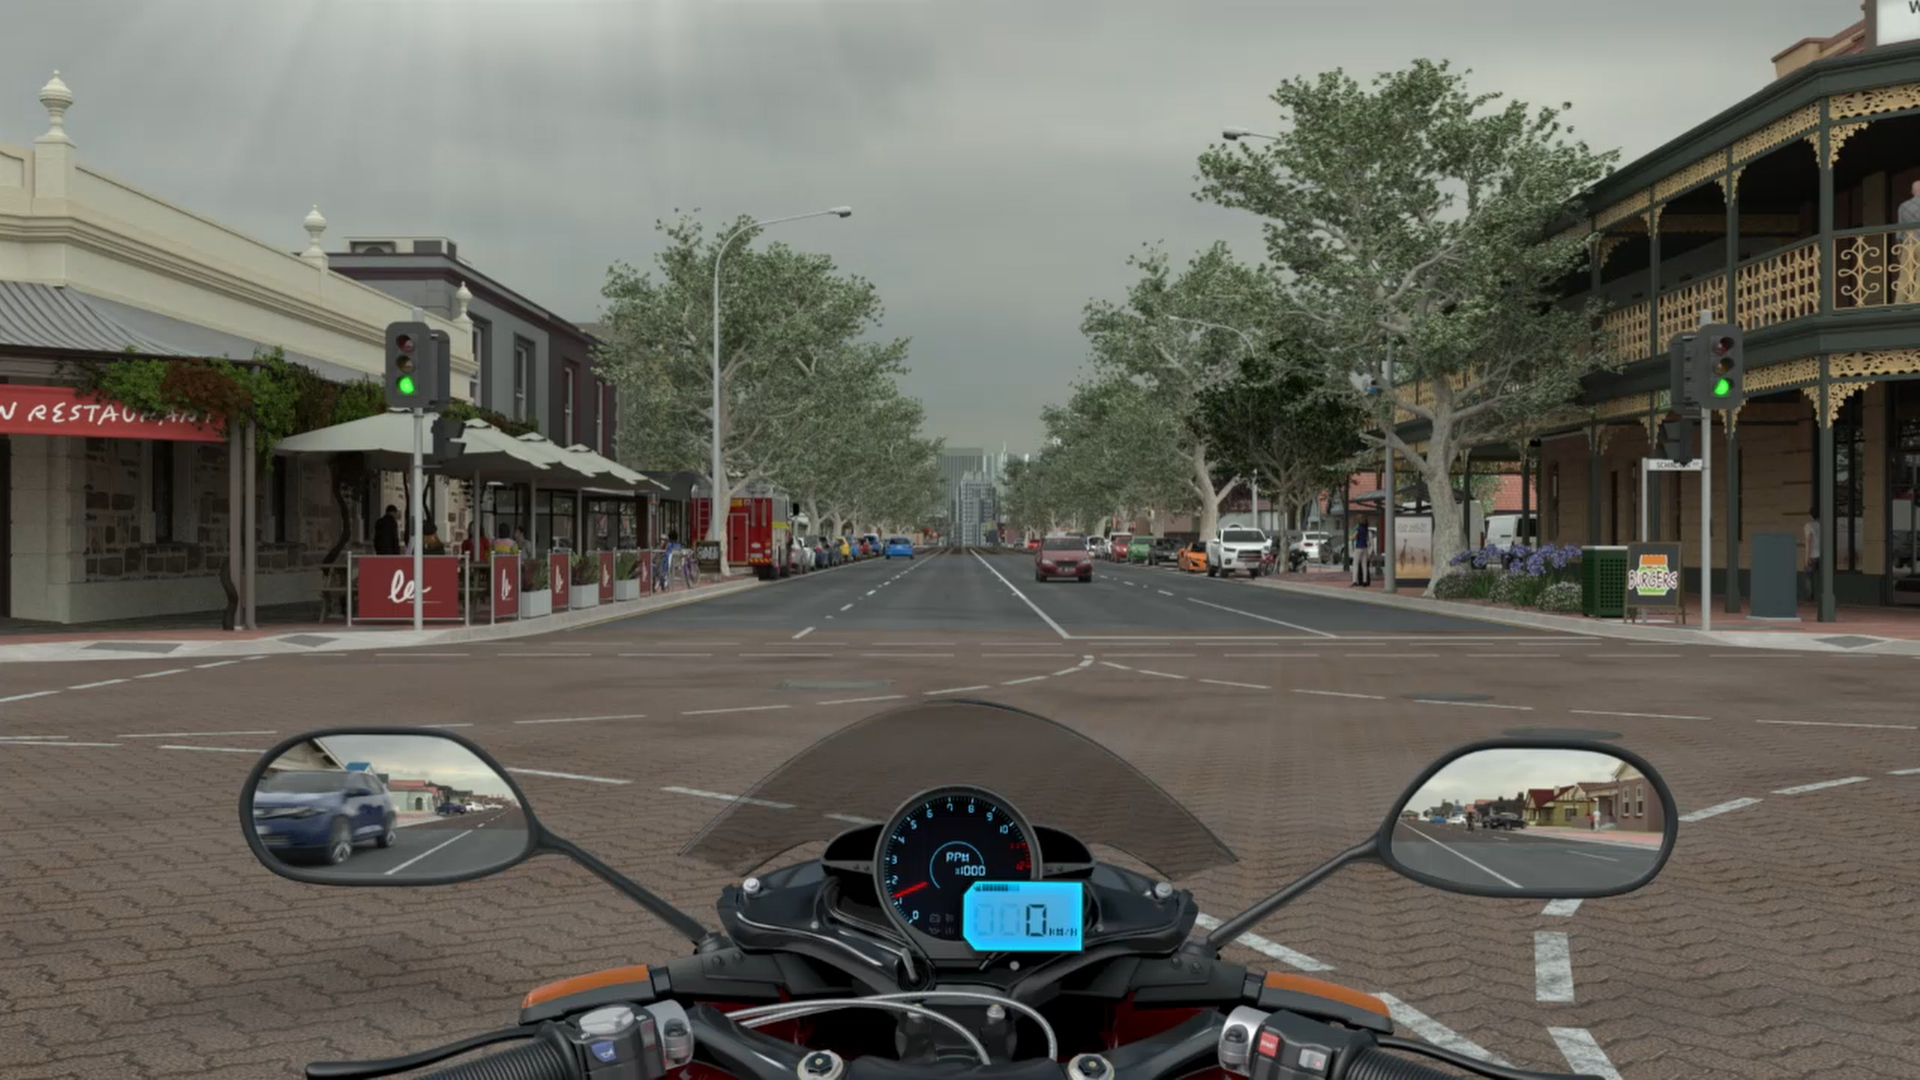 Hazard Perception Test simulator